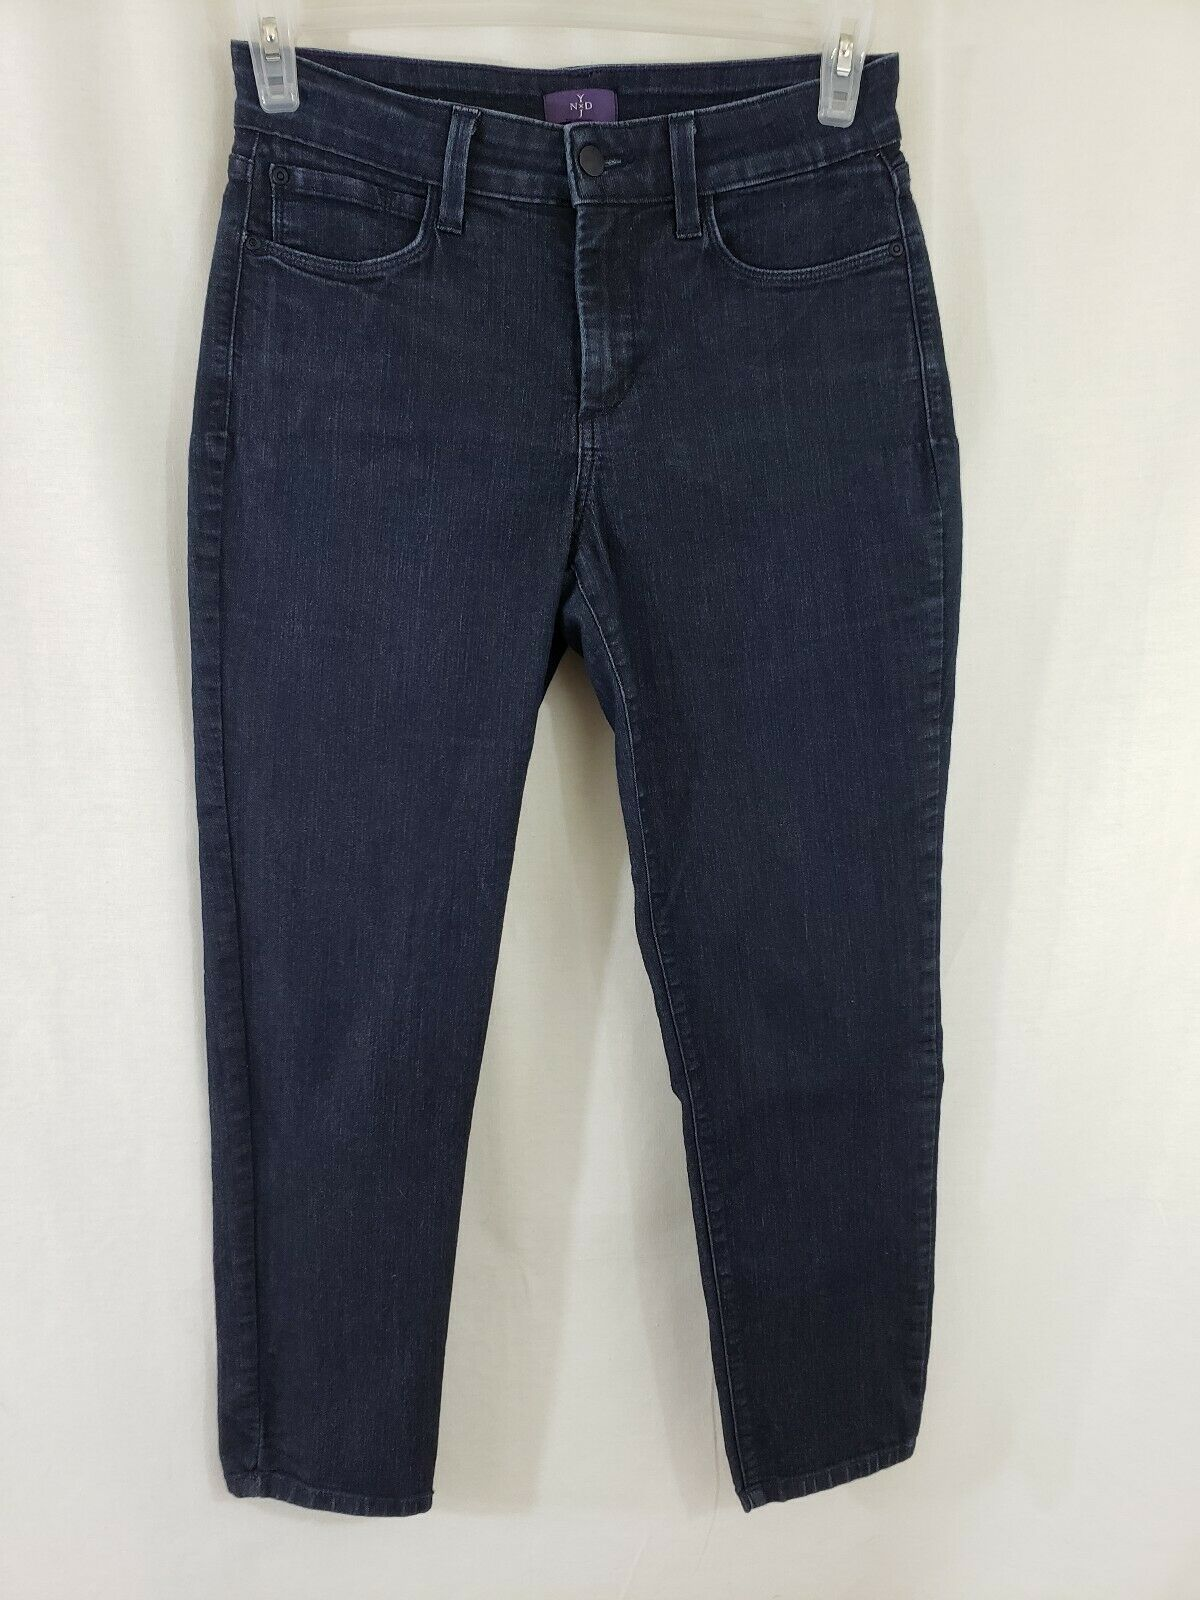 NYDJ Not Your Daughters Jeans Ankle Womens bluee Jeans Size 28 x 28 Dark EUC